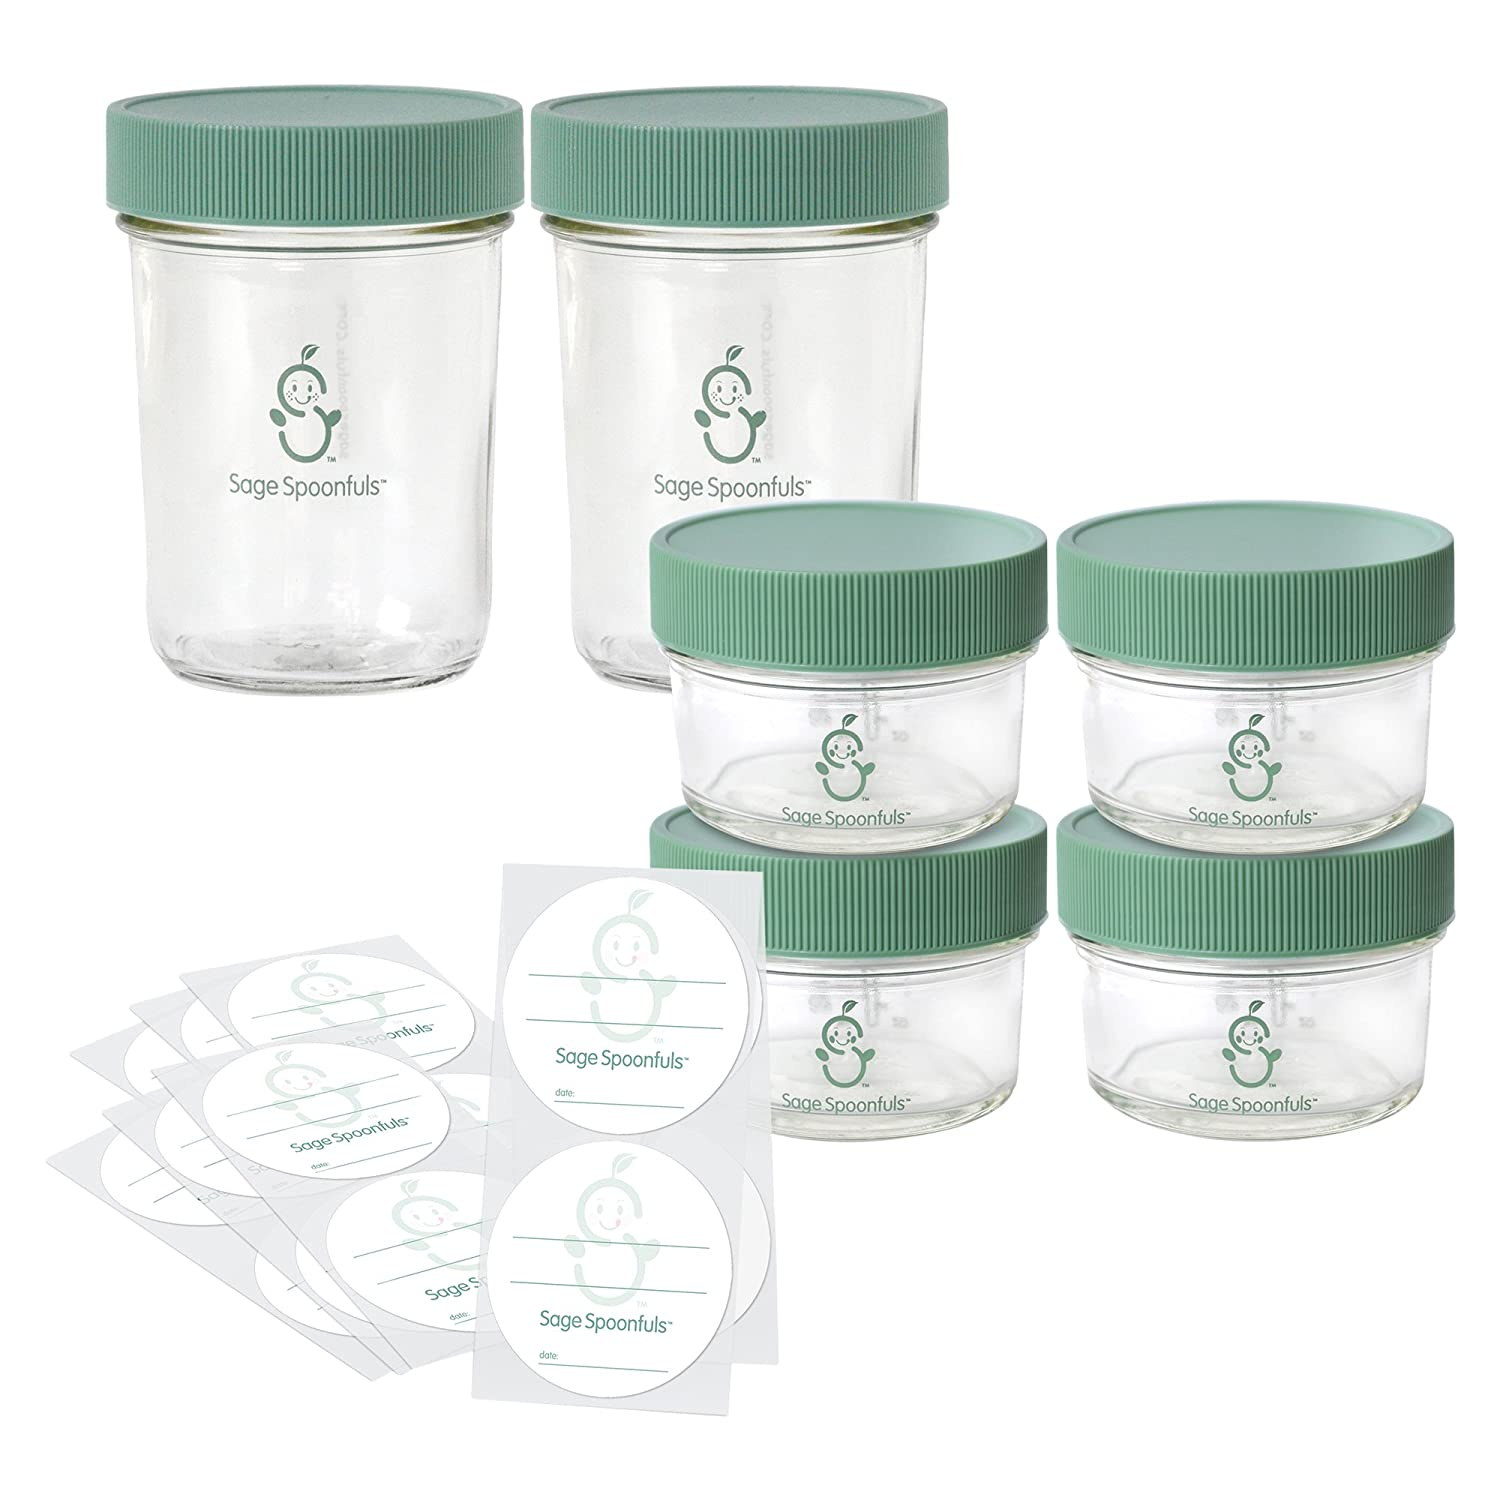 Sage Spoonfuls Make in Bulk Glass Jars, (Set of 2 8oz & 4 4oz Glass Jars)